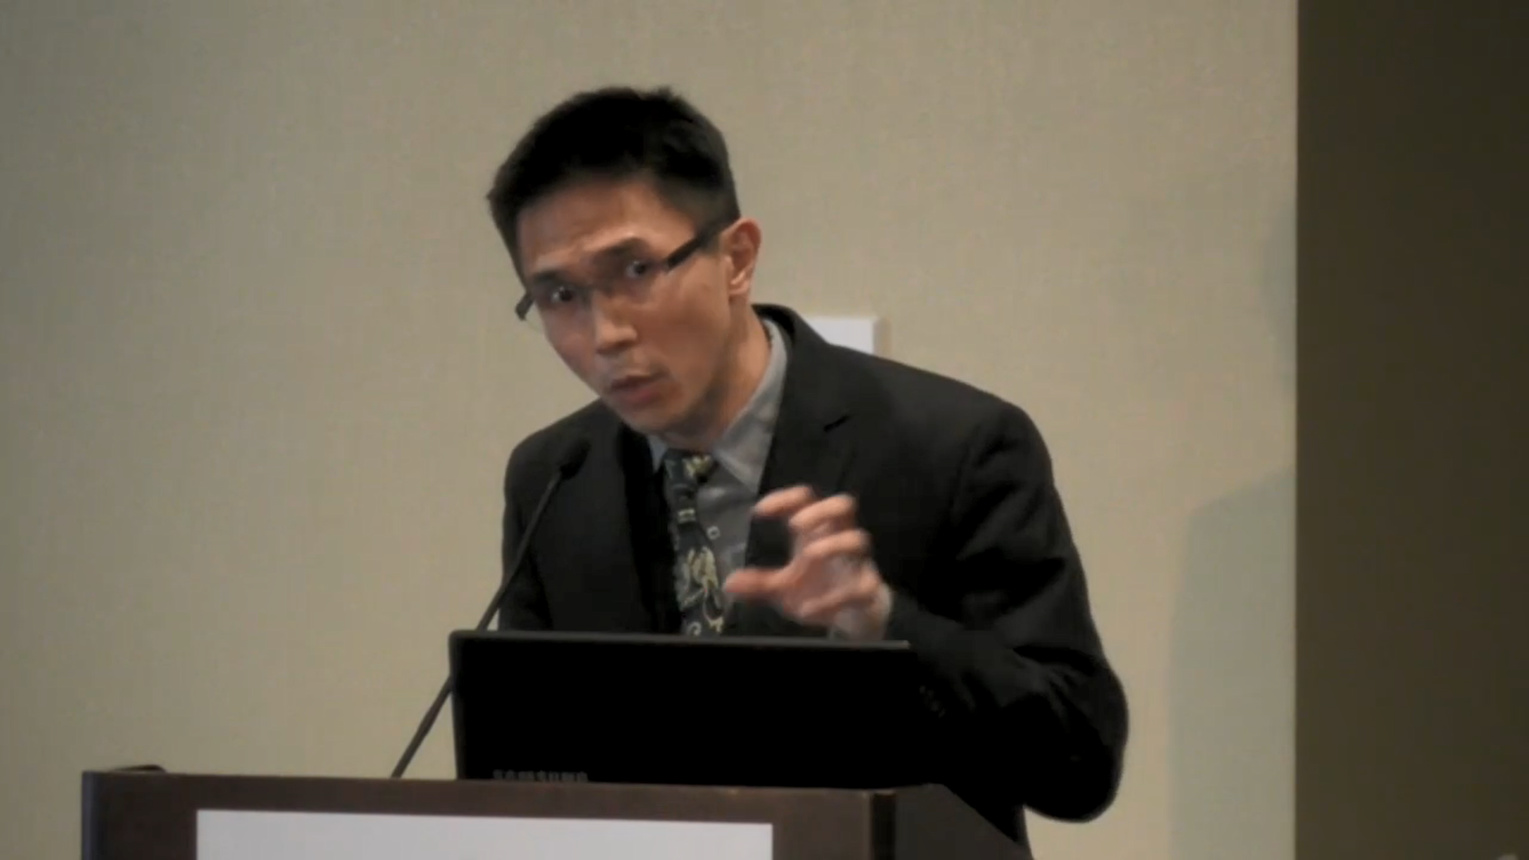 Multi-Input Multi-Output (MIMO) Technology in 3GPP – from 3G to 5G - Dr. Eko Onggosanusi, Samsung